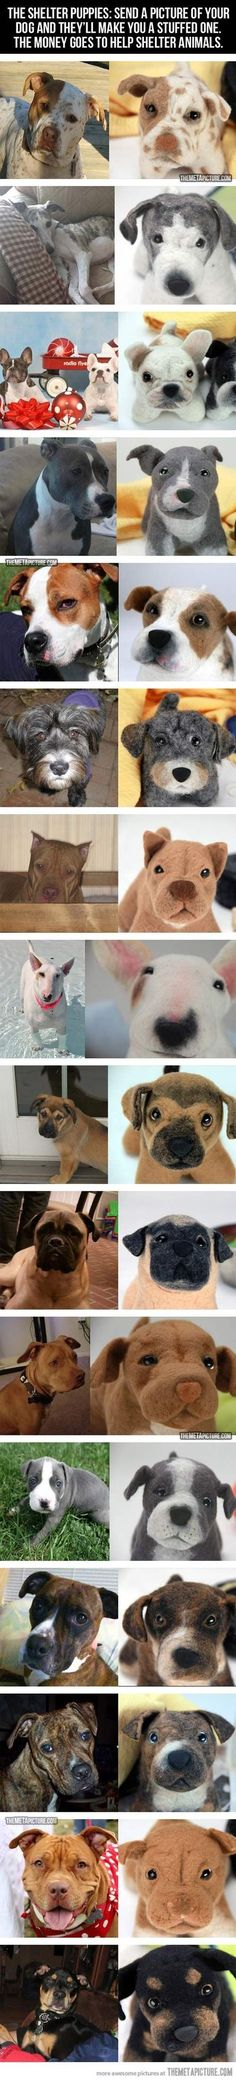 The Shelter Puppies: Send a picture of your dog and they'll make you a stuffed one. The money goes to help shelter animals!